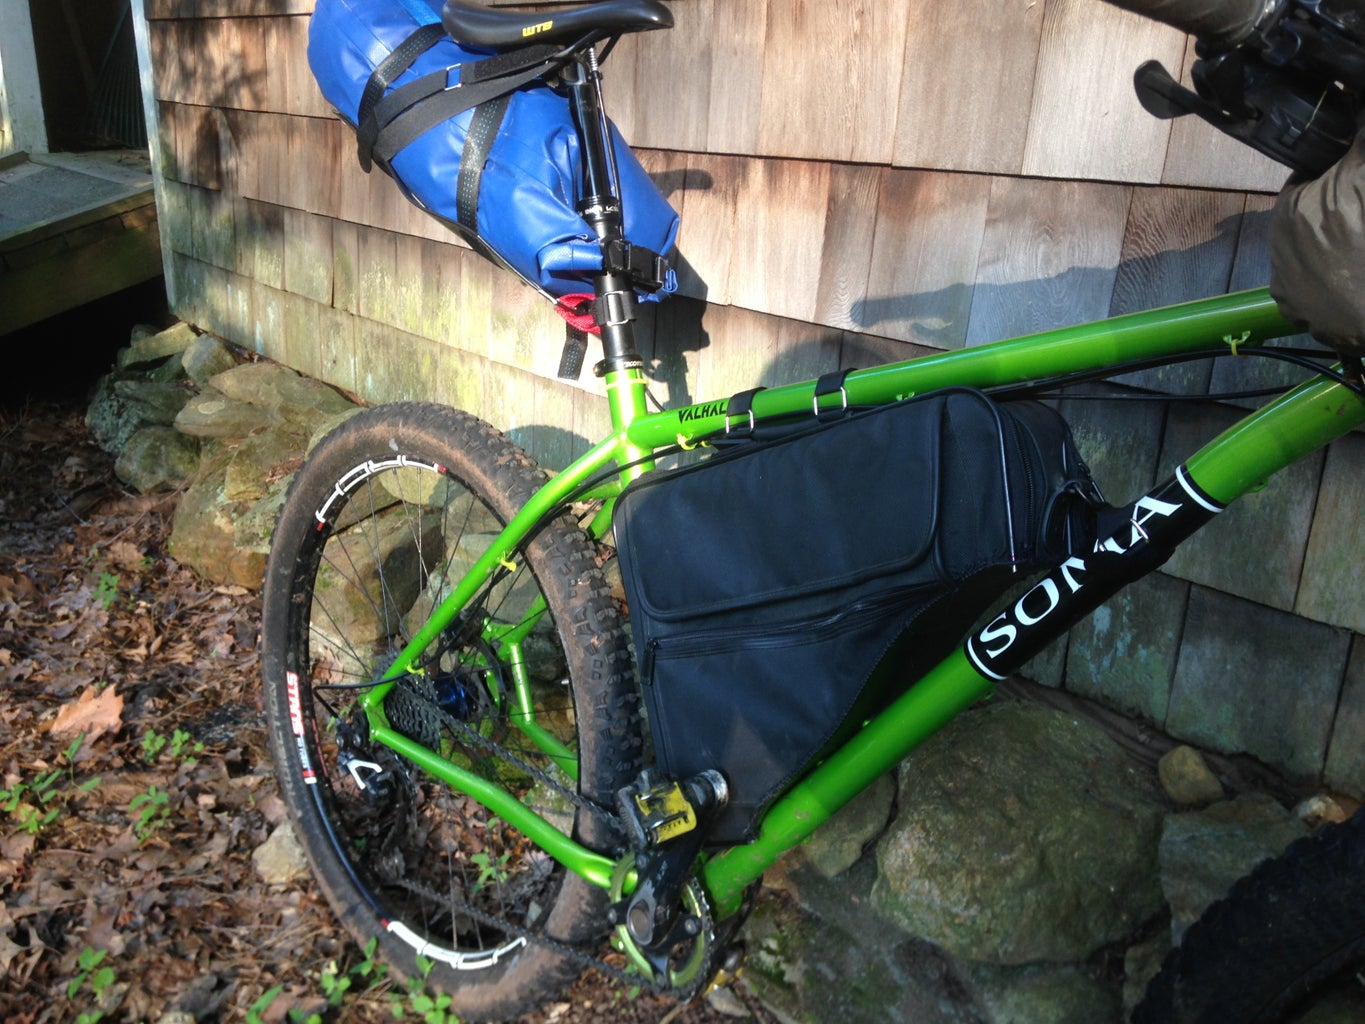 Outfitting the Bike With the Bags